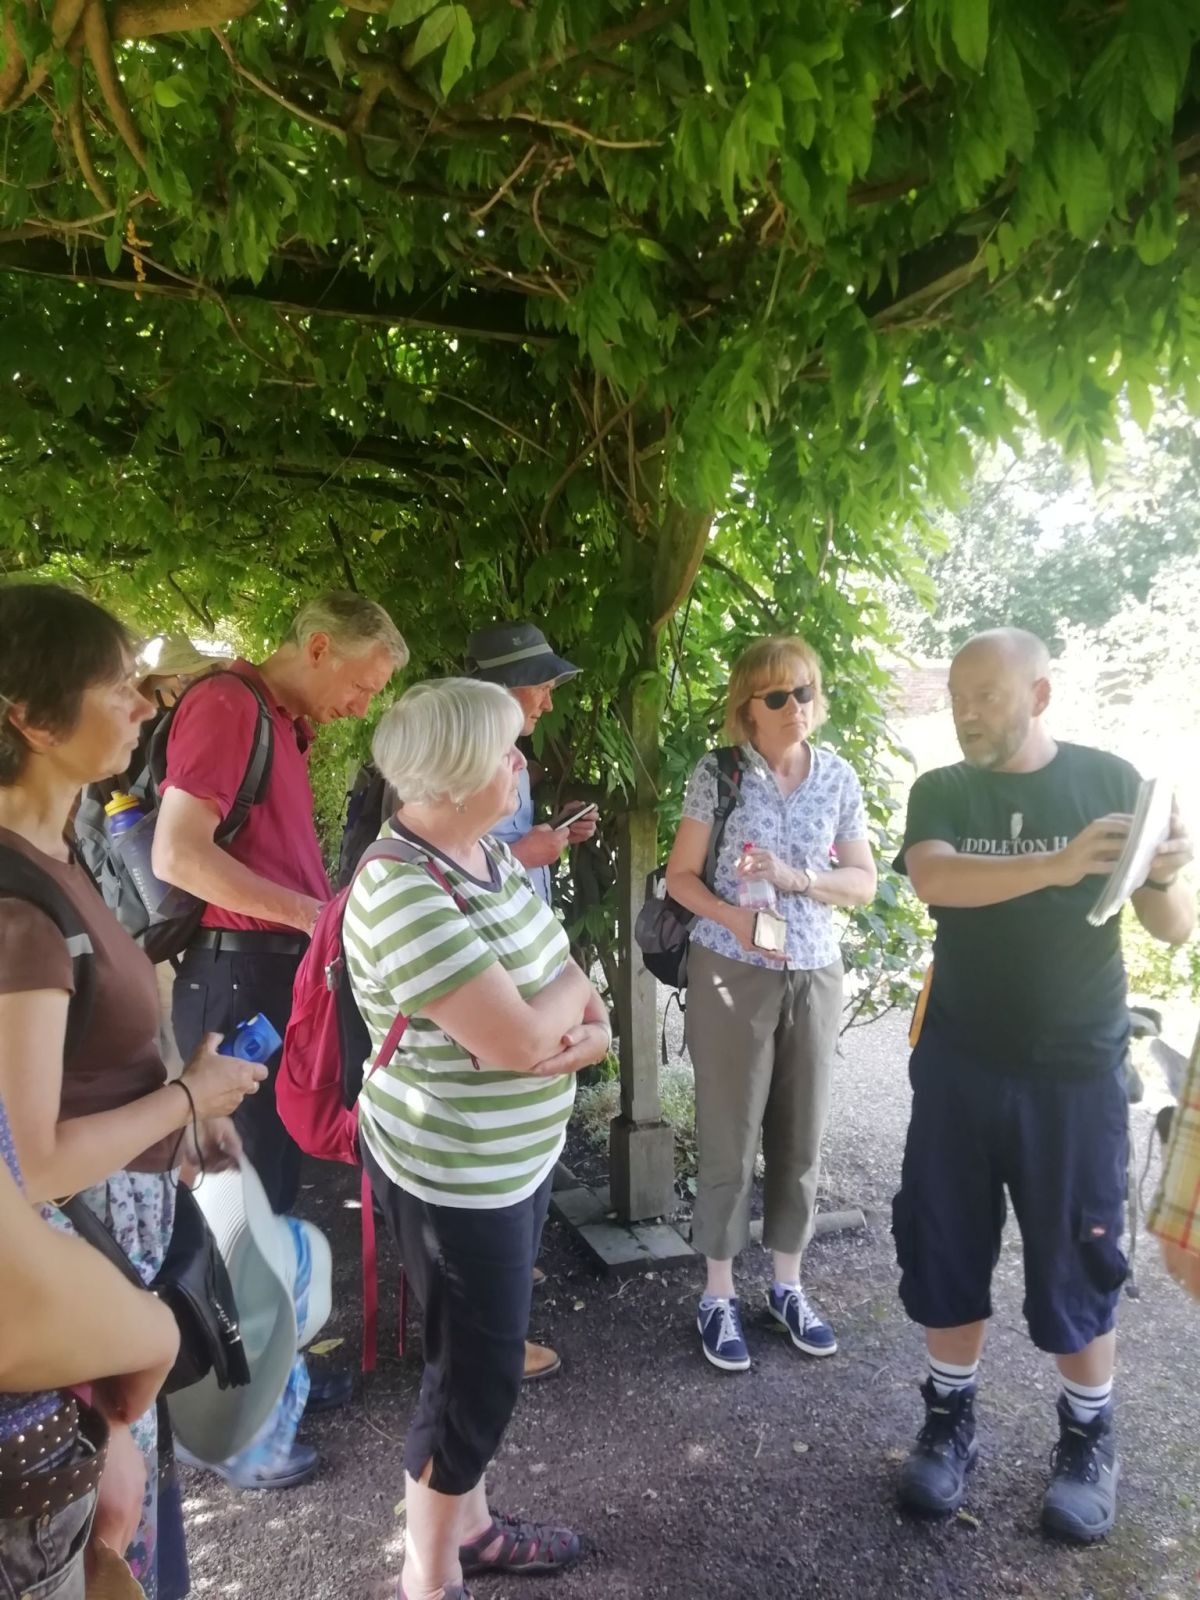 Paul leads a tour of Winterbourne staff and volunteers, Middleton Hall and Gardens, photograph by Leighanne Gee, The Week That Was, Digging for Dirt, Winterbourne House and Garden